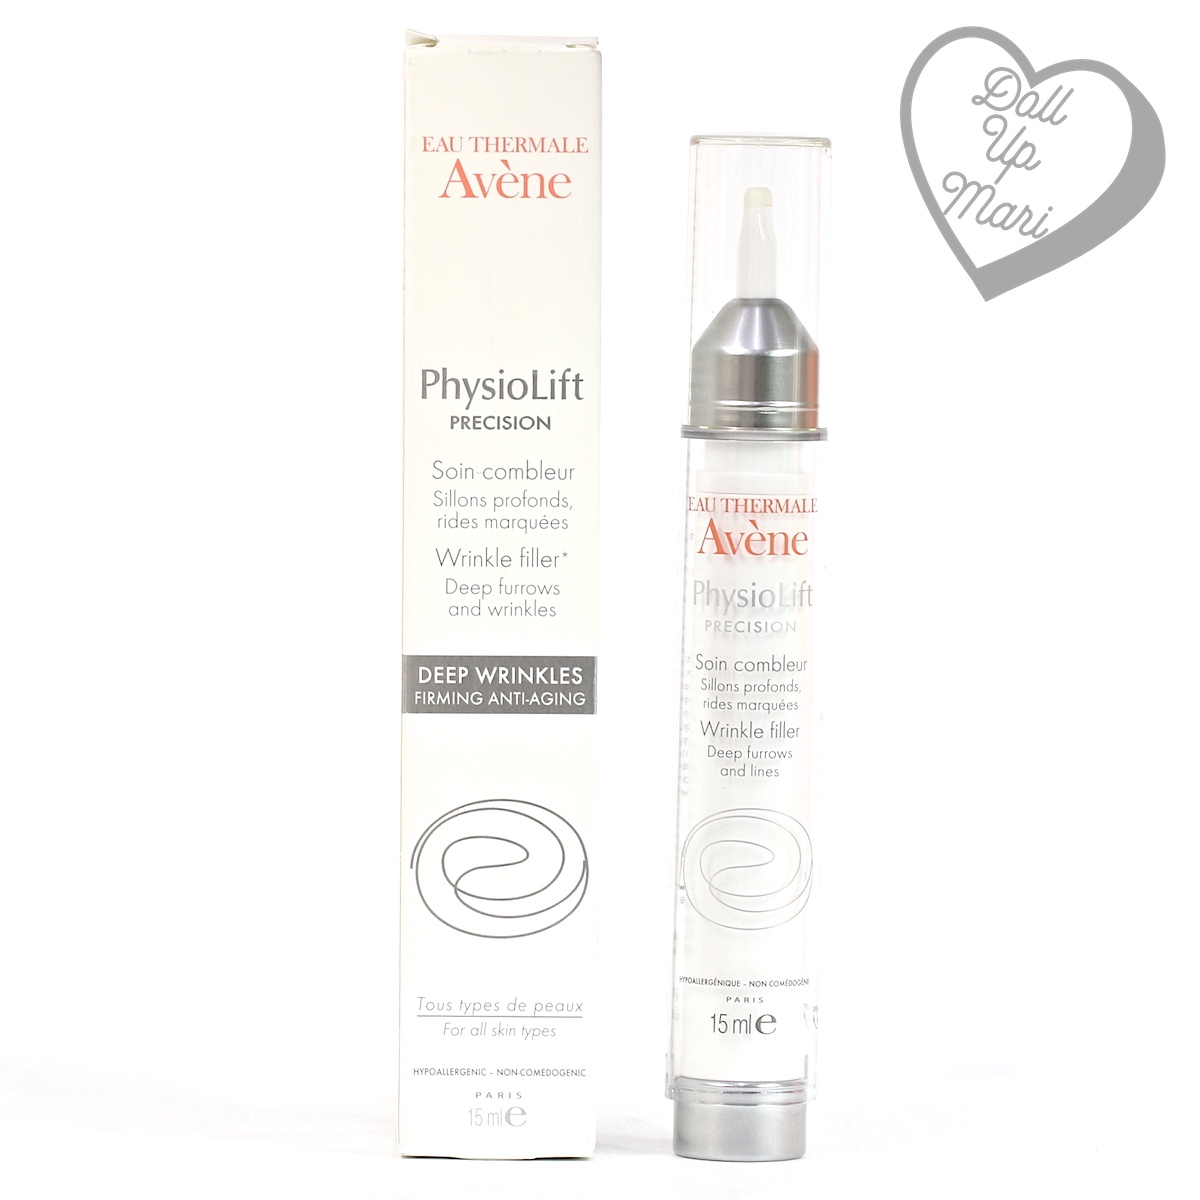 Pack shot of Avène PhysioLift Precision Wrinkle Filler